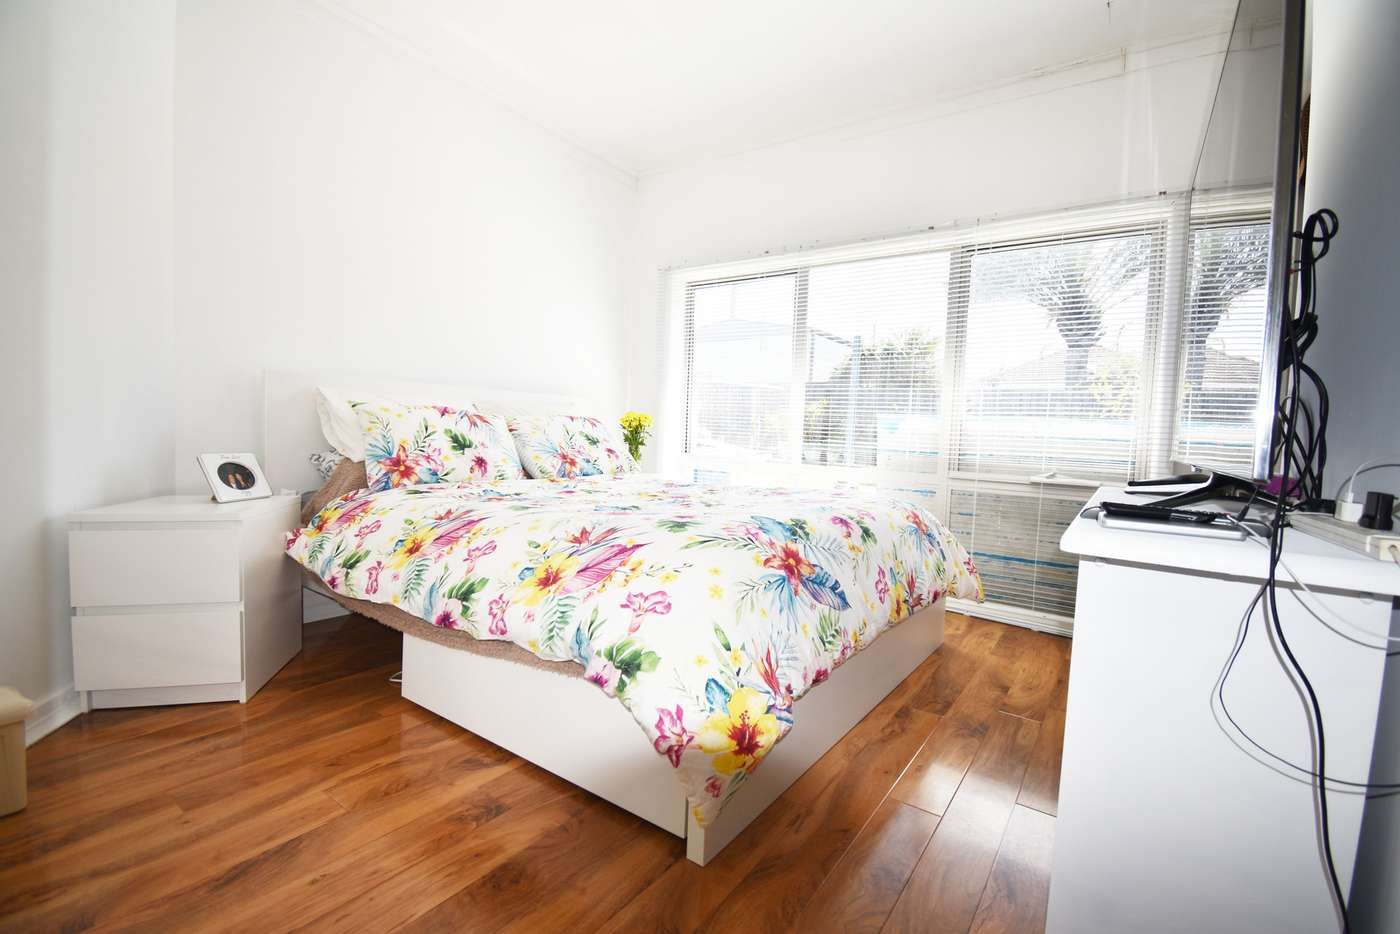 Sixth view of Homely house listing, 89 St Johns Road, Canley Heights NSW 2166